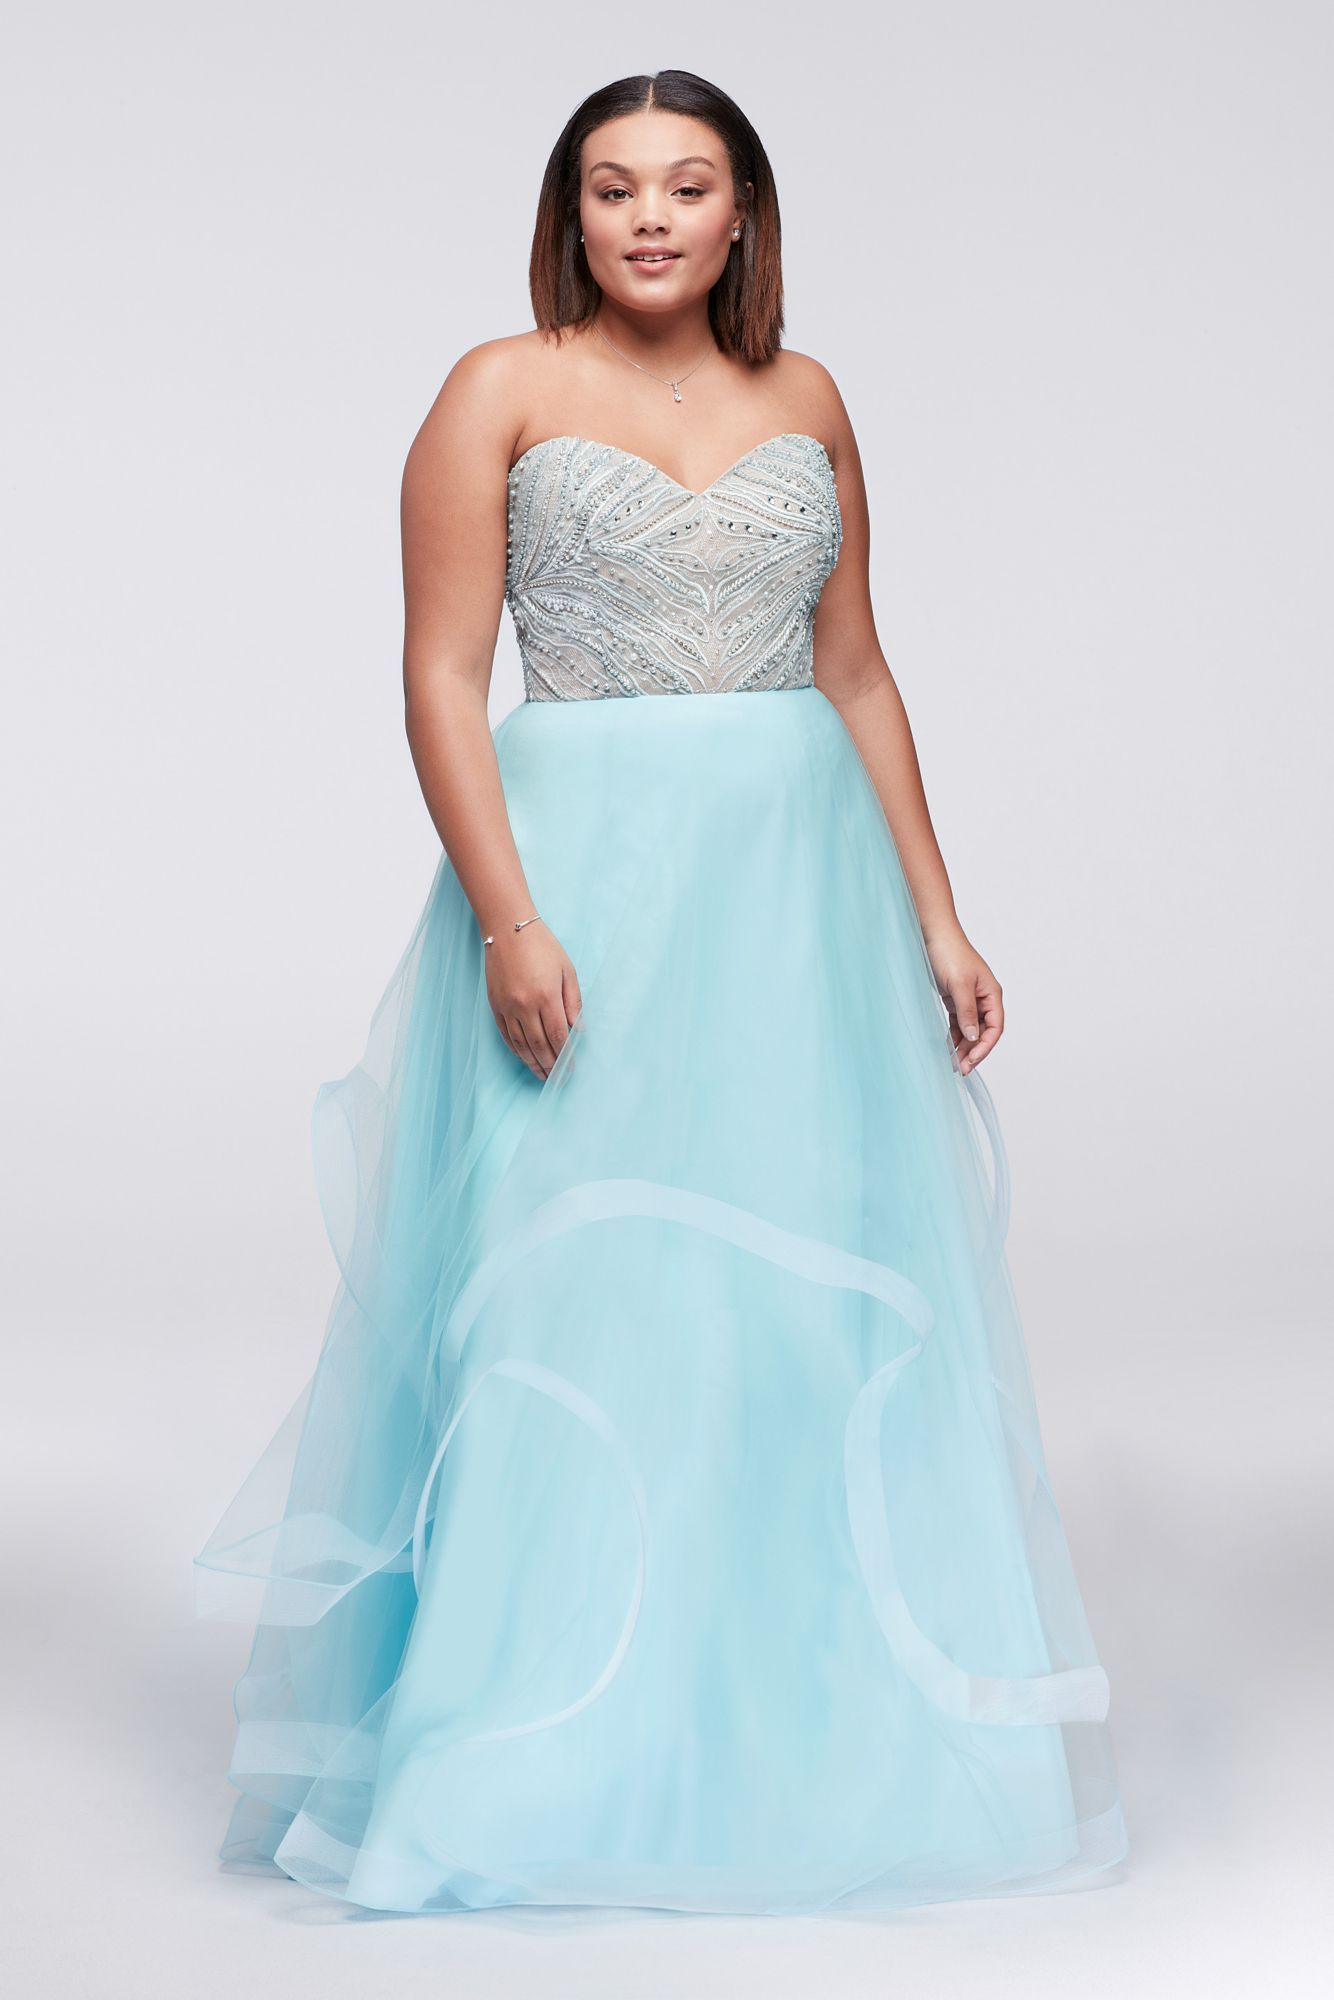 e4f2300b085c0 Plus Size Strapless Beaded Bodice Prom Dress with Tiered Tulle Skirt Style  1711P2838W